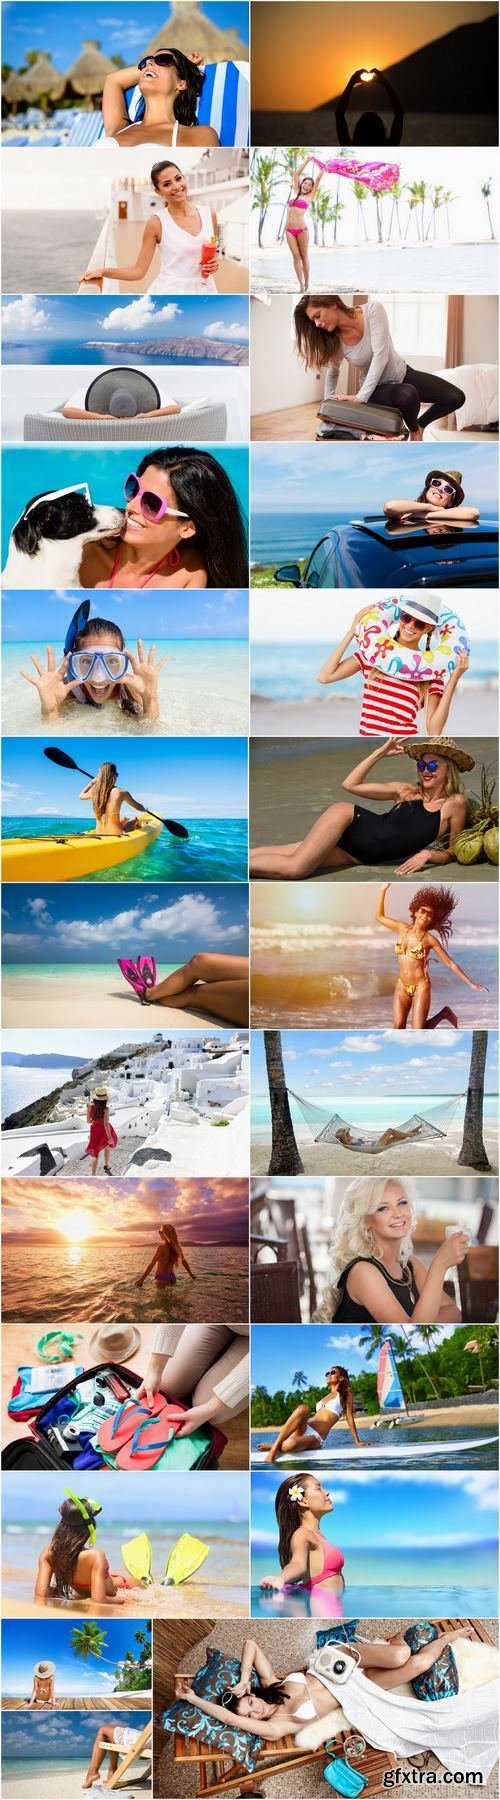 Girl woman on holiday vacation travel tourism sea beach 25 HQ Jpeg